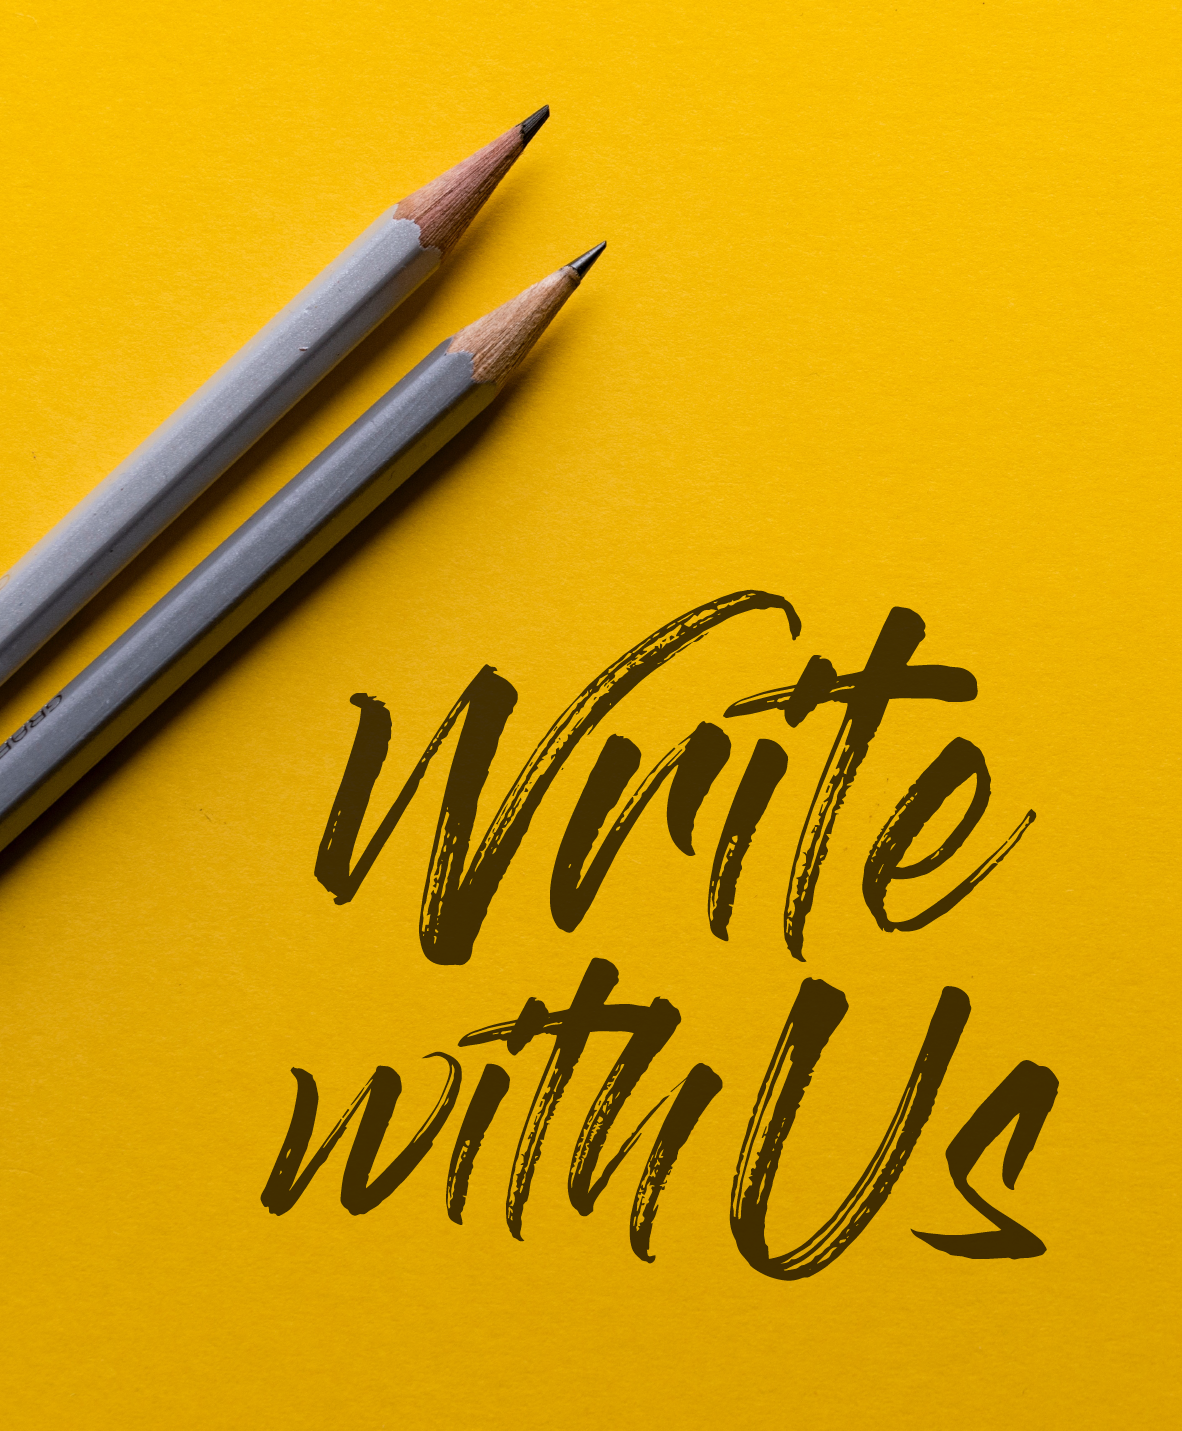 write with us, daddilife